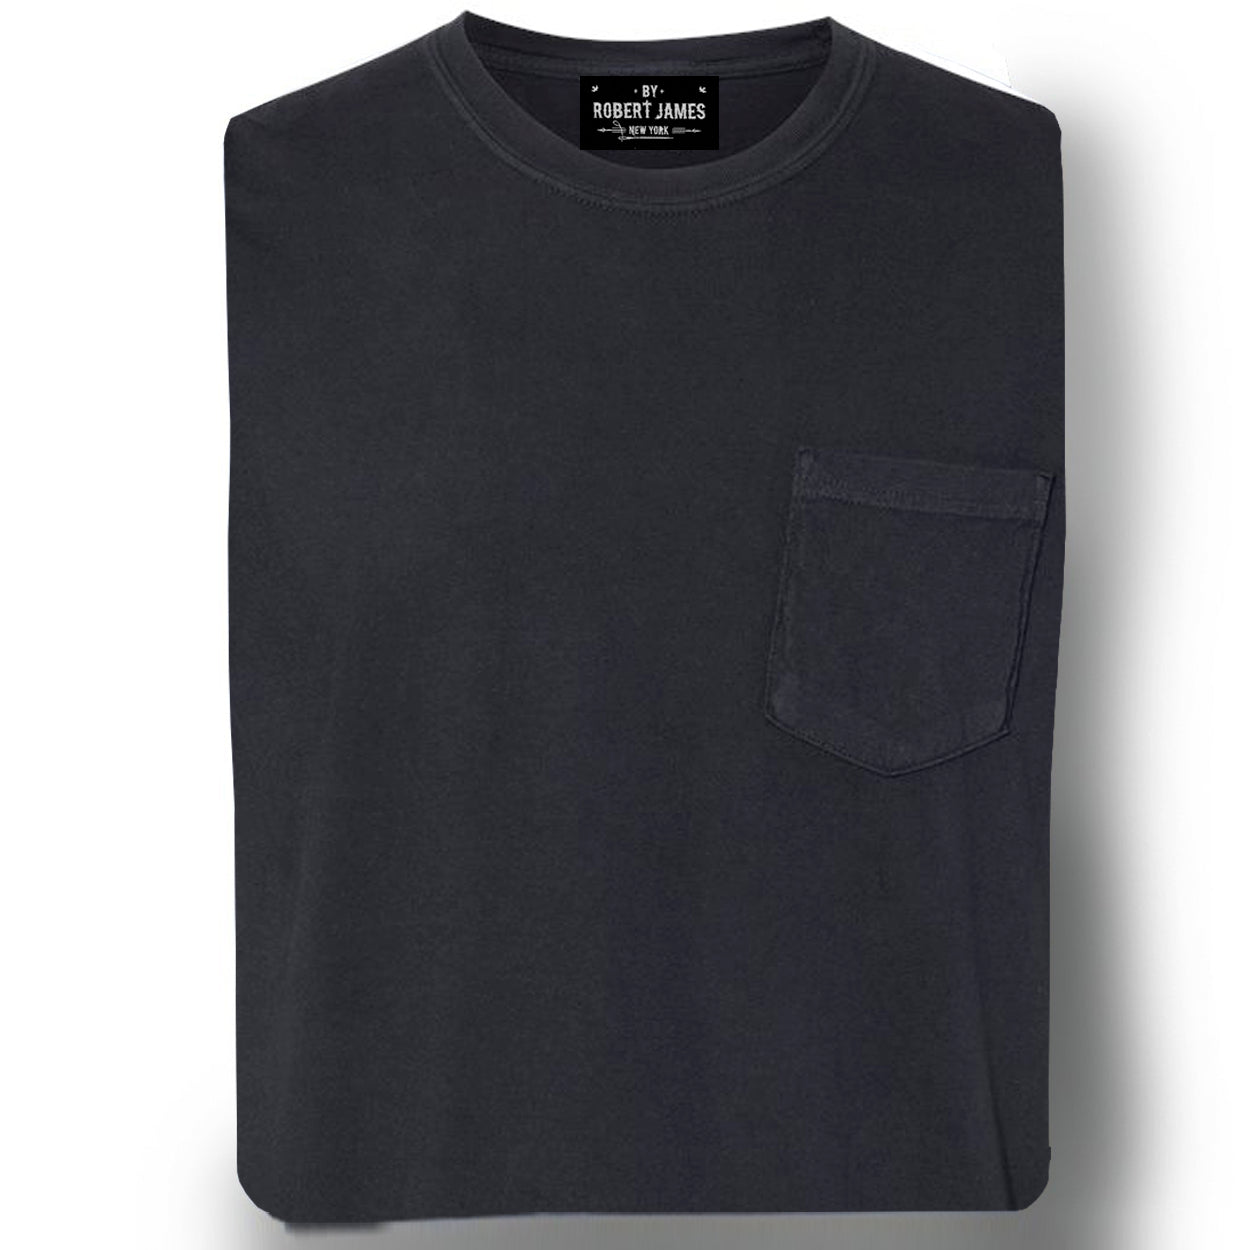 DAGGERS PIGMENT DYED POCKET TEE - WASHED BLACK Men's Knit T-Shirt By Robert James